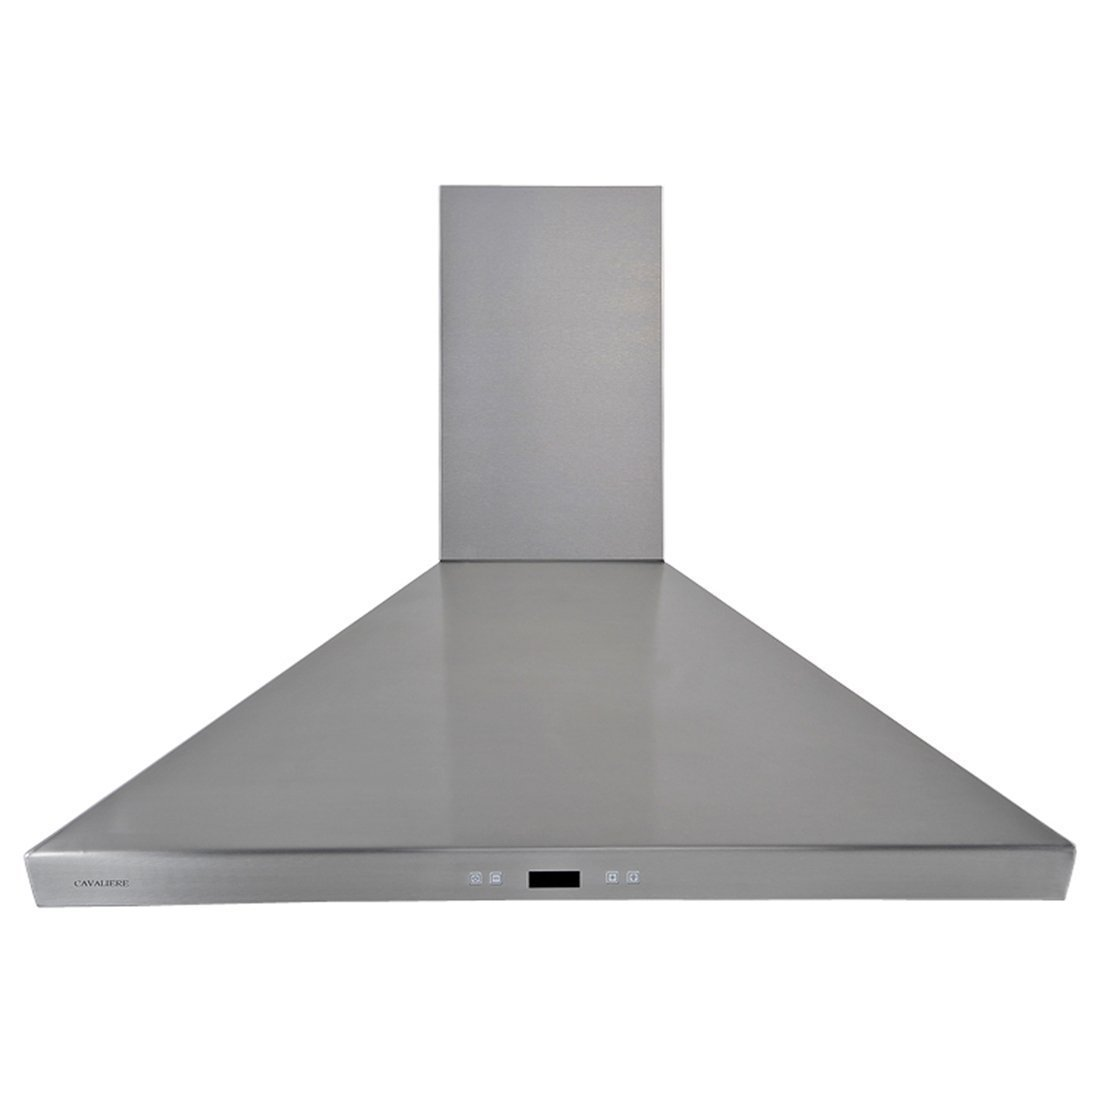 CAVALIERE SV218F-36 Wall Mounted Stainless Steel Kitchen Range Hood 900 CFM by CAVALIERE